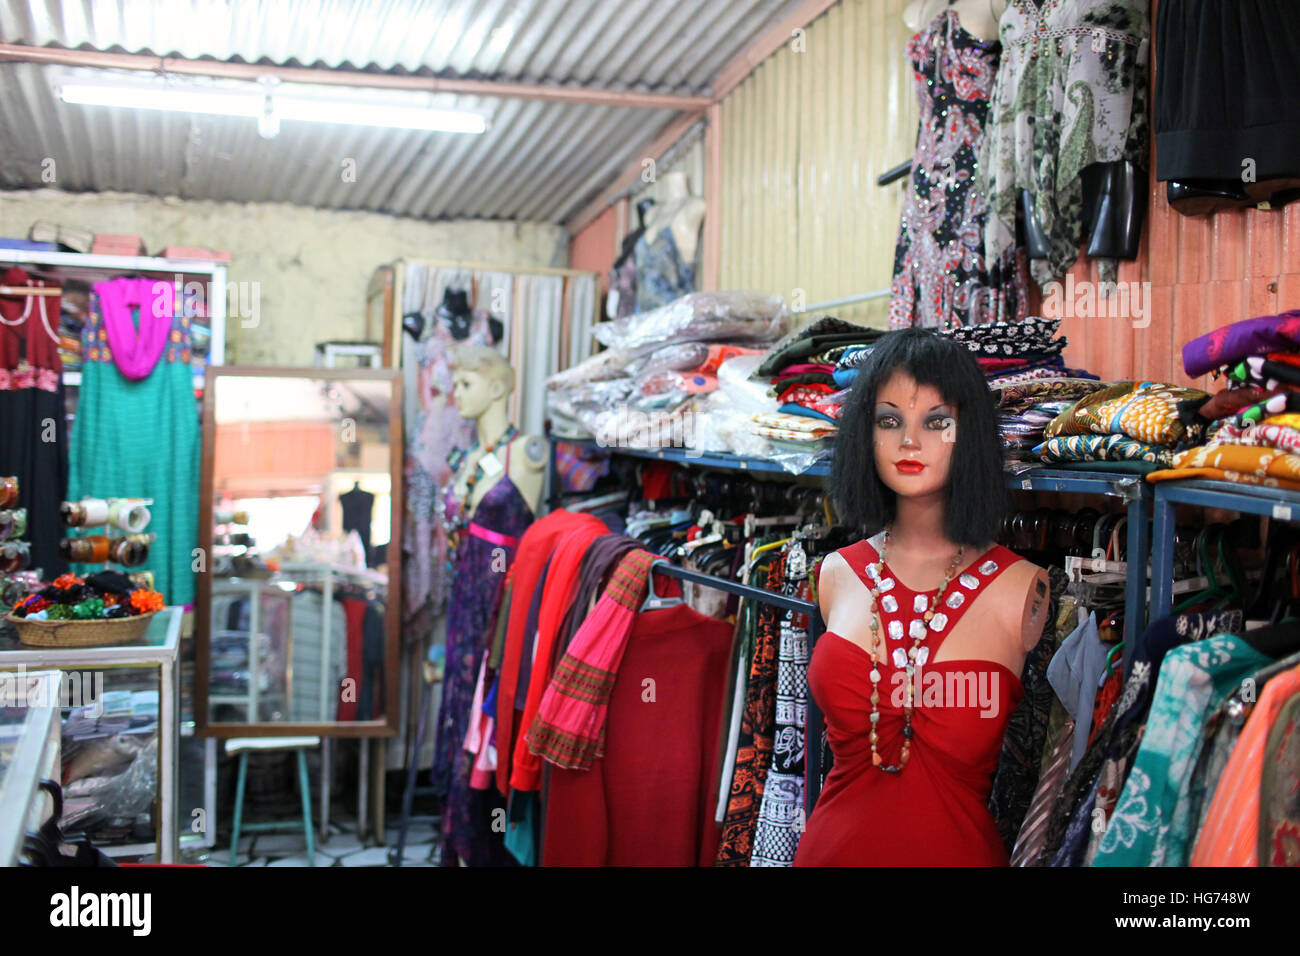 266916a22 Funny Mannequin Stock Photos & Funny Mannequin Stock Images - Alamy